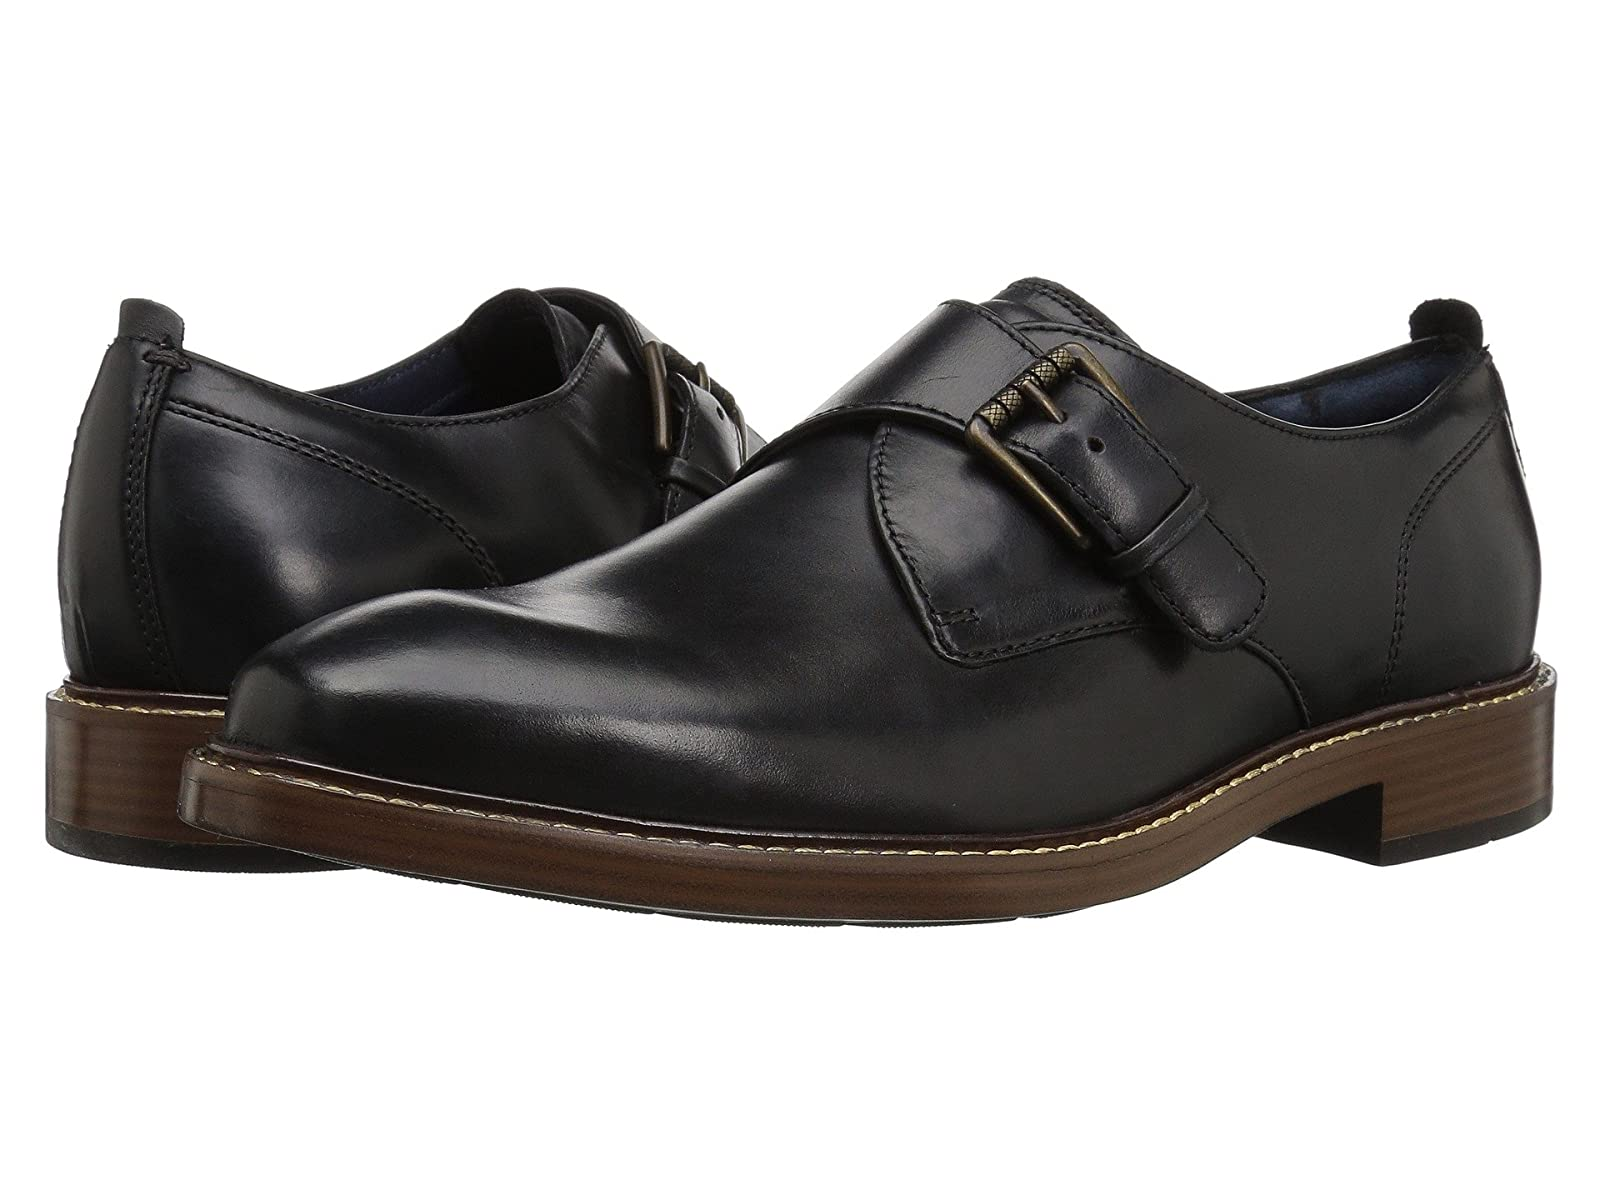 Cole Haan Kennedy Single Monk IICheap and distinctive eye-catching shoes